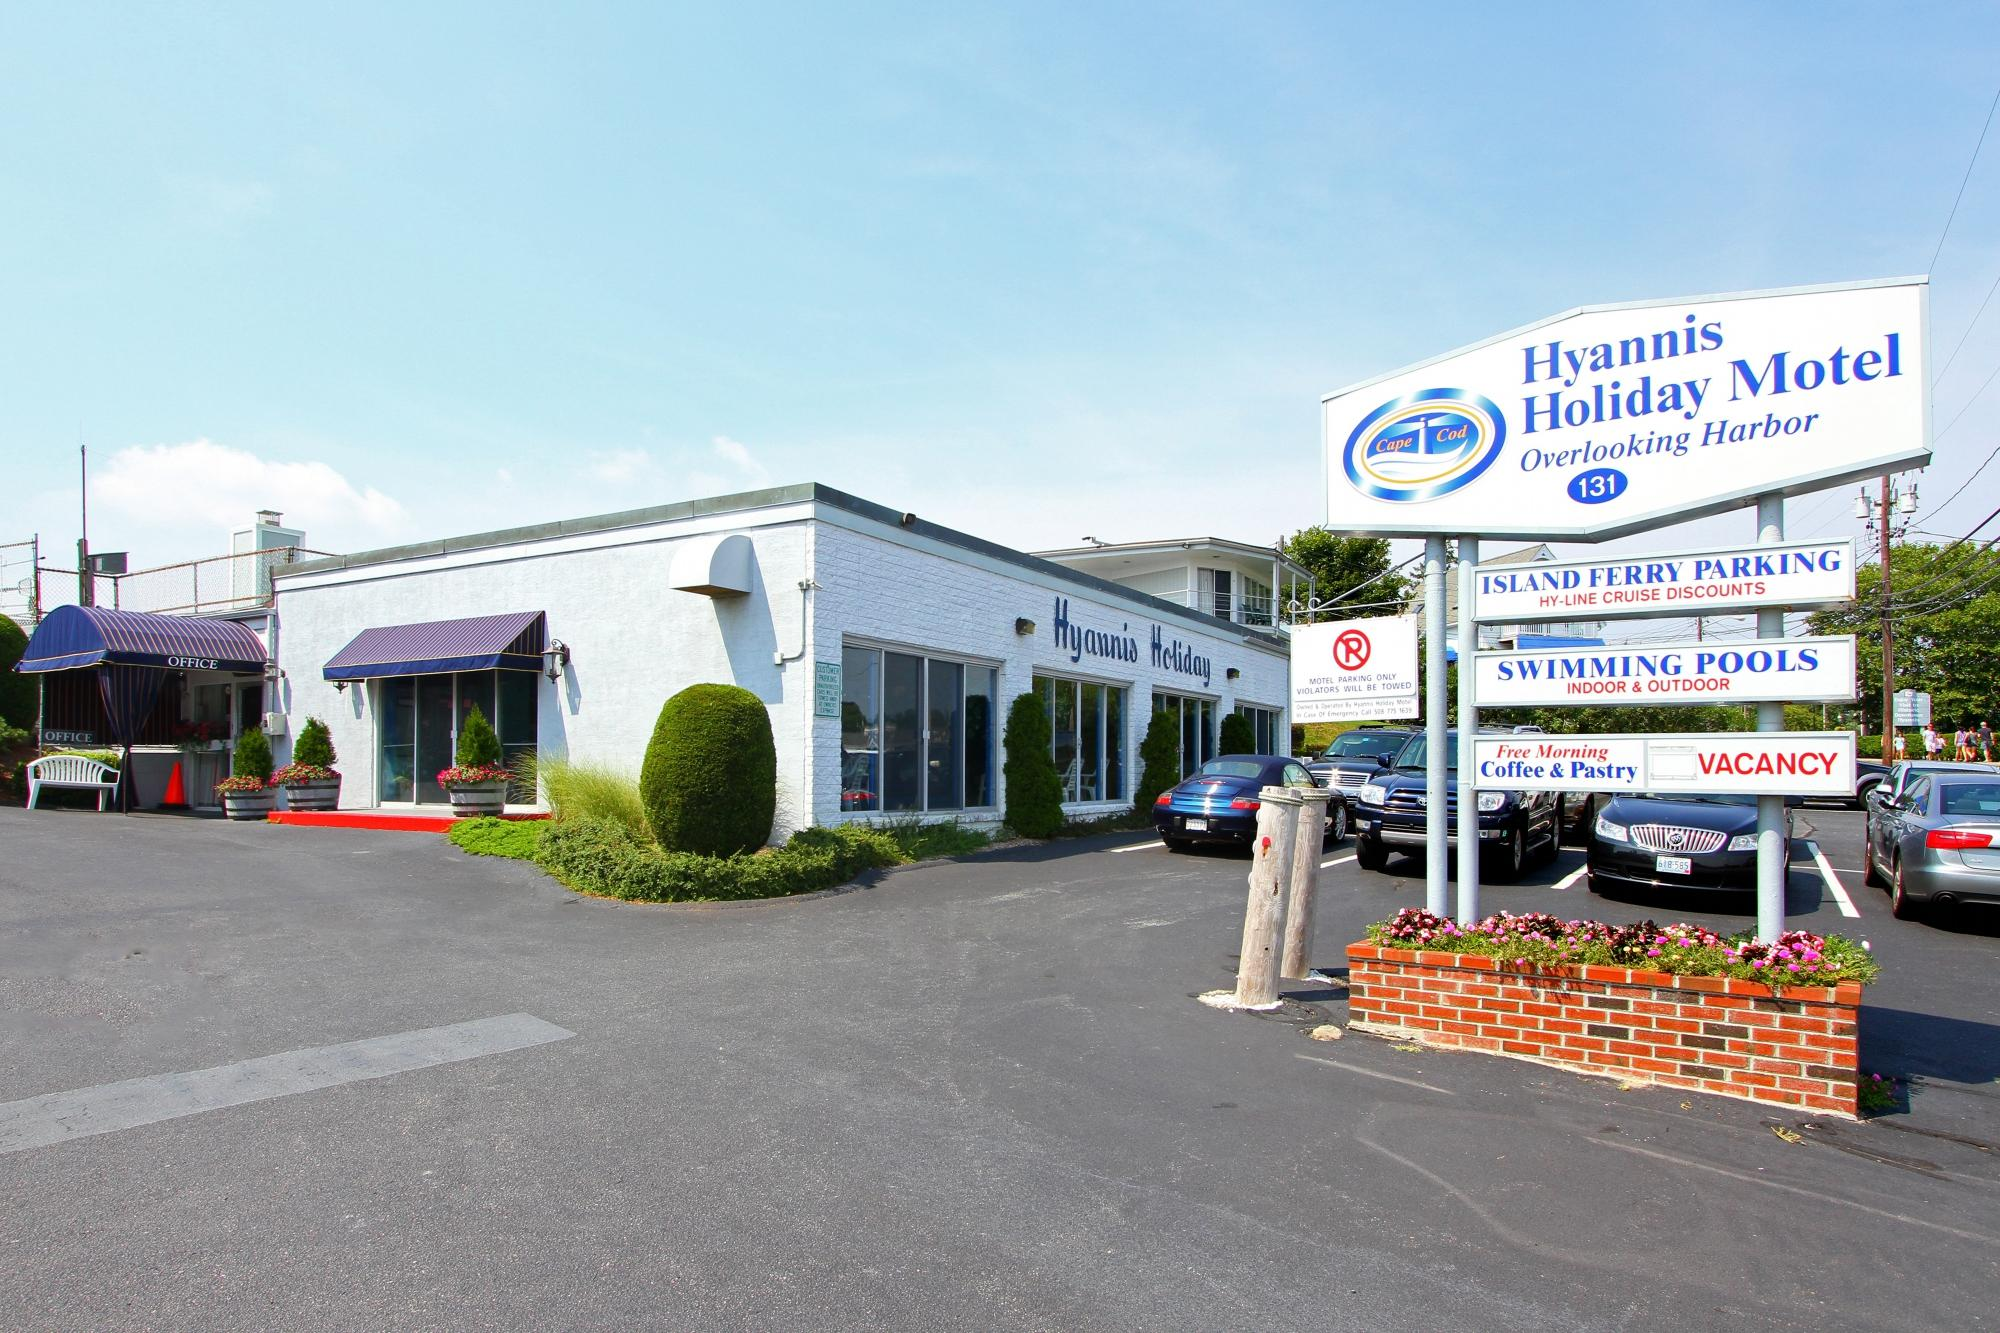 Hyannis Holiday Motel